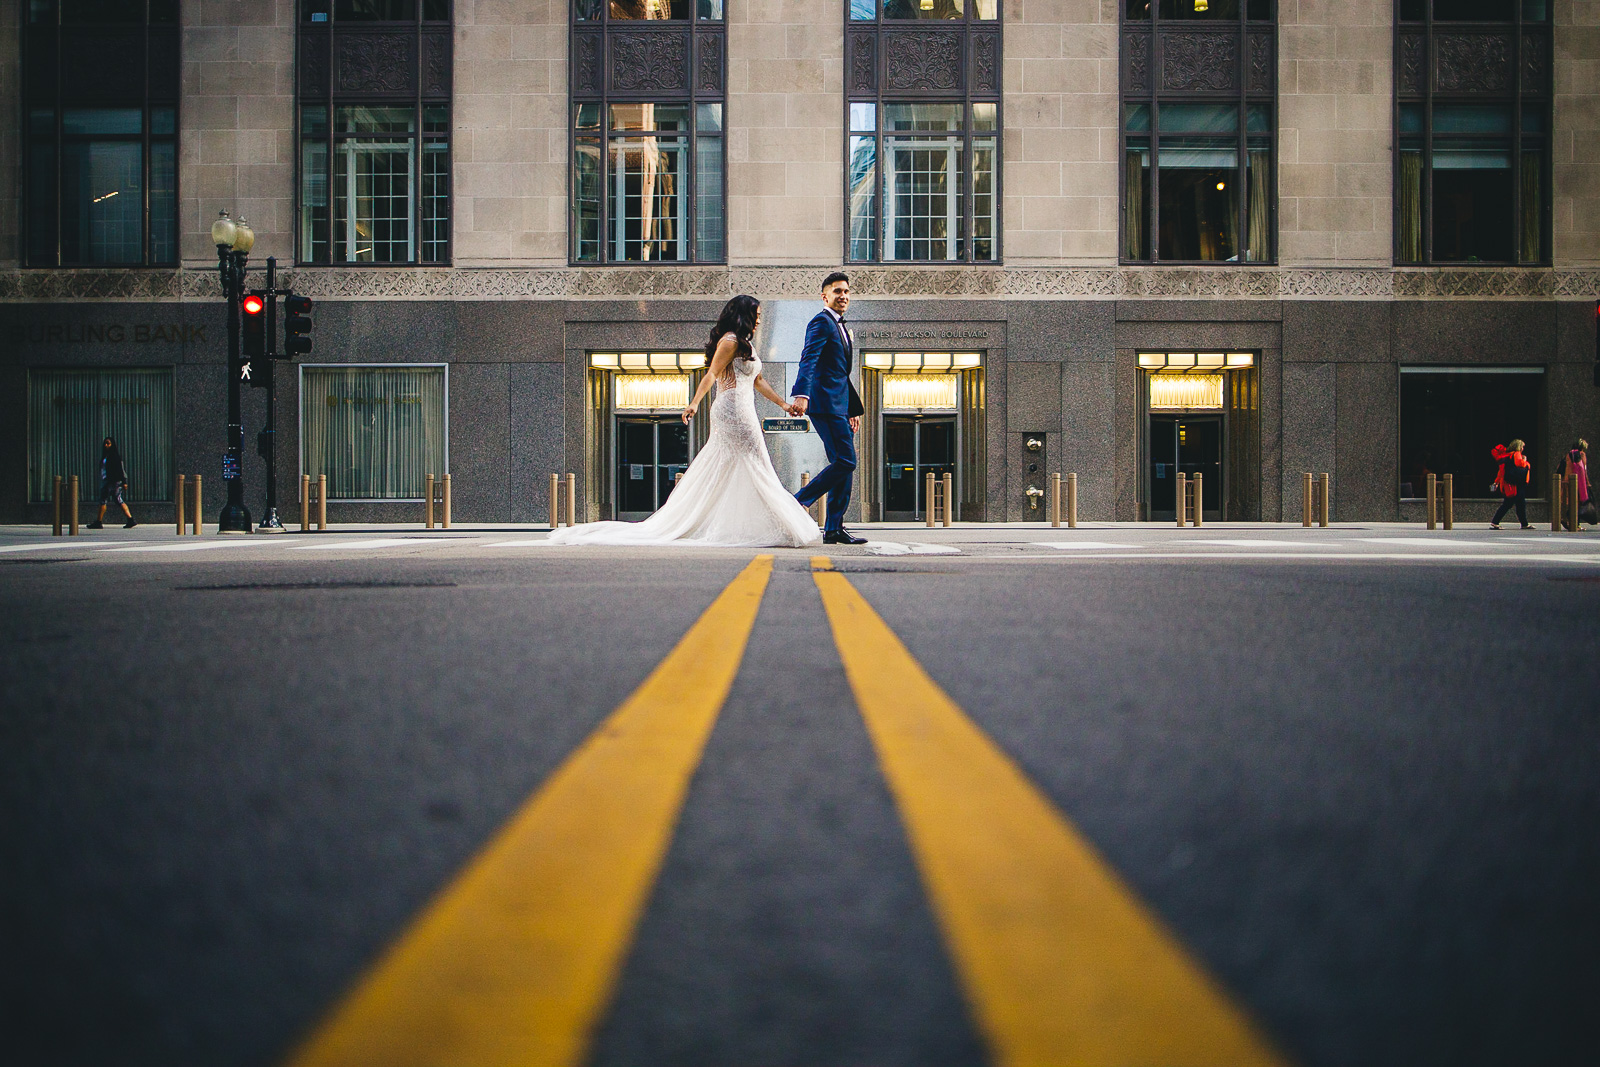 64 renaissance hotel chicago wedding photos - Renaissance Hotel Chicago Wedding Photos // Francine + RJ